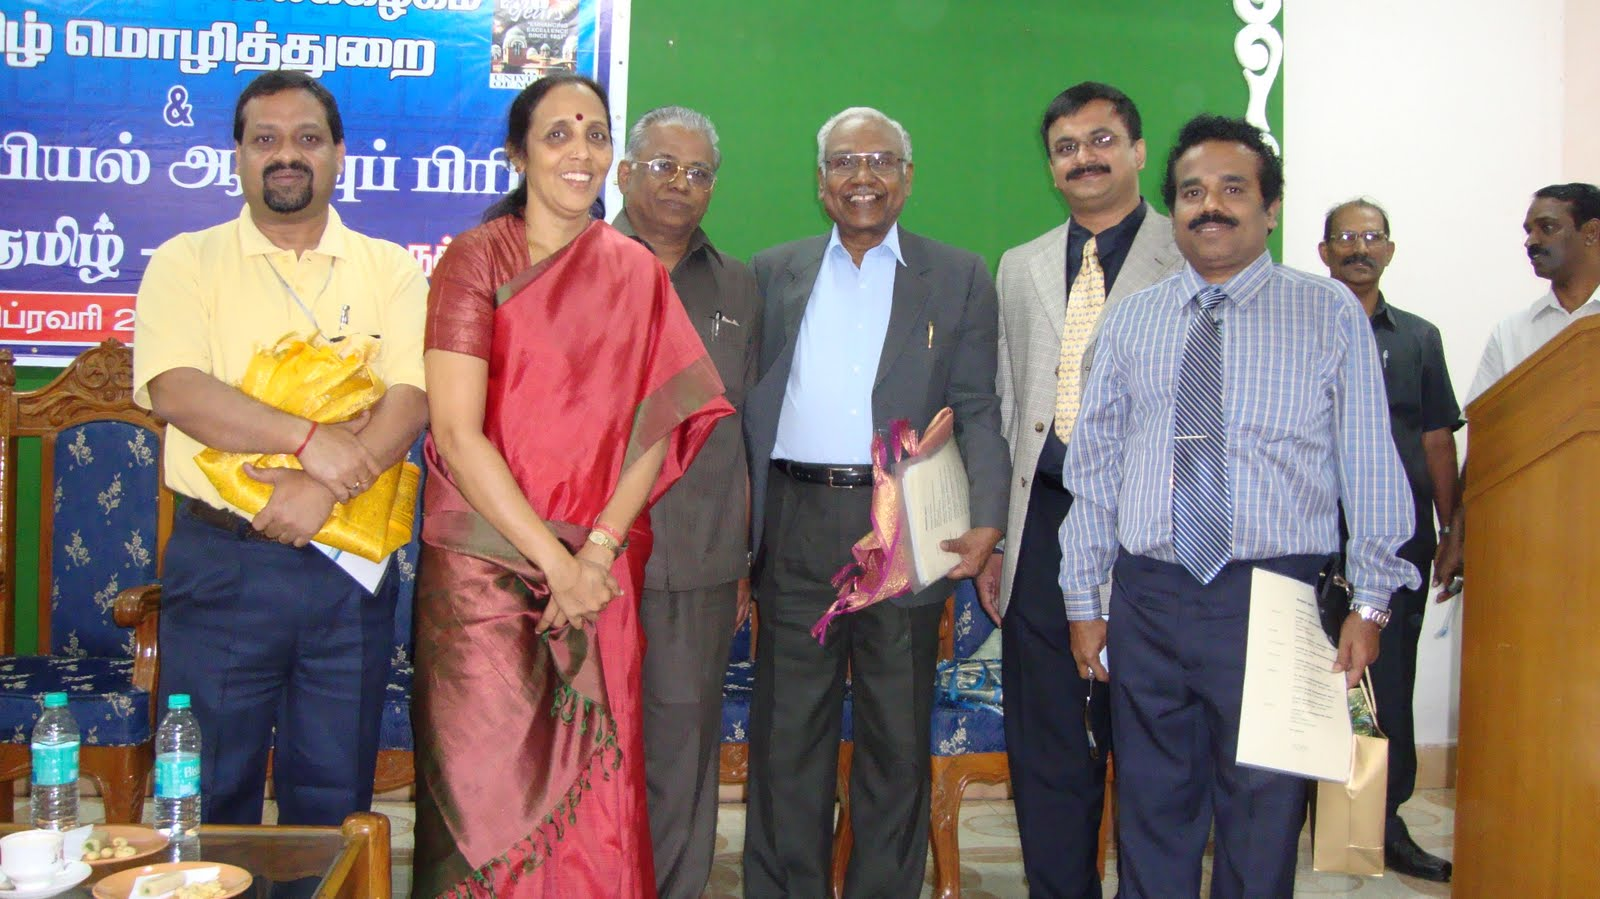 Dr. Niladri Sekhar Dash (Indian Statistical Institute),Dr.Poongothai Aladi Aruna (Minister for Information Technology, Tamilnadu Government), Prof. N. Deivasundaram (Head of the Department of Tamil Language, University of Madras), Prof.M.Anandakrishnan (Chairman, IIT Kanpur),T.N.C.Venkata Rangan (Chair, INFITT), Dr.A.R. Sivakumaran (Professor, Nanyang Technological University, Singapore)